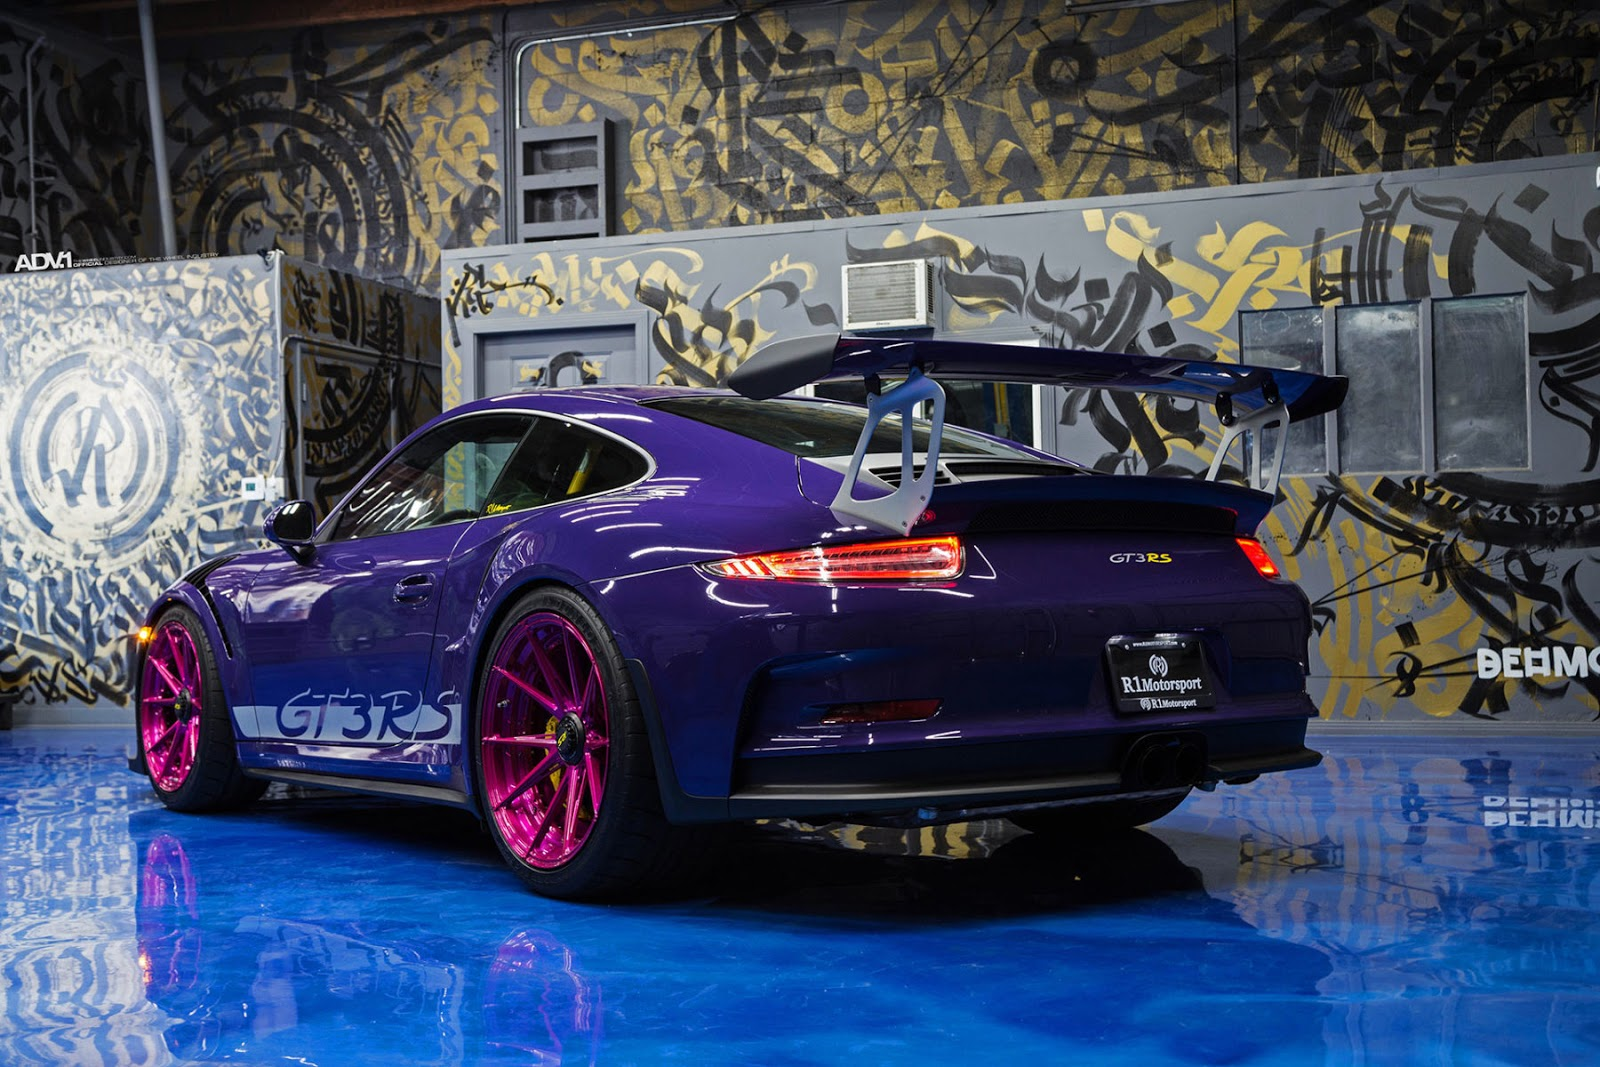 Ultraviolet Porsche 911 Gt3 Rs Poses With Pink Wheels